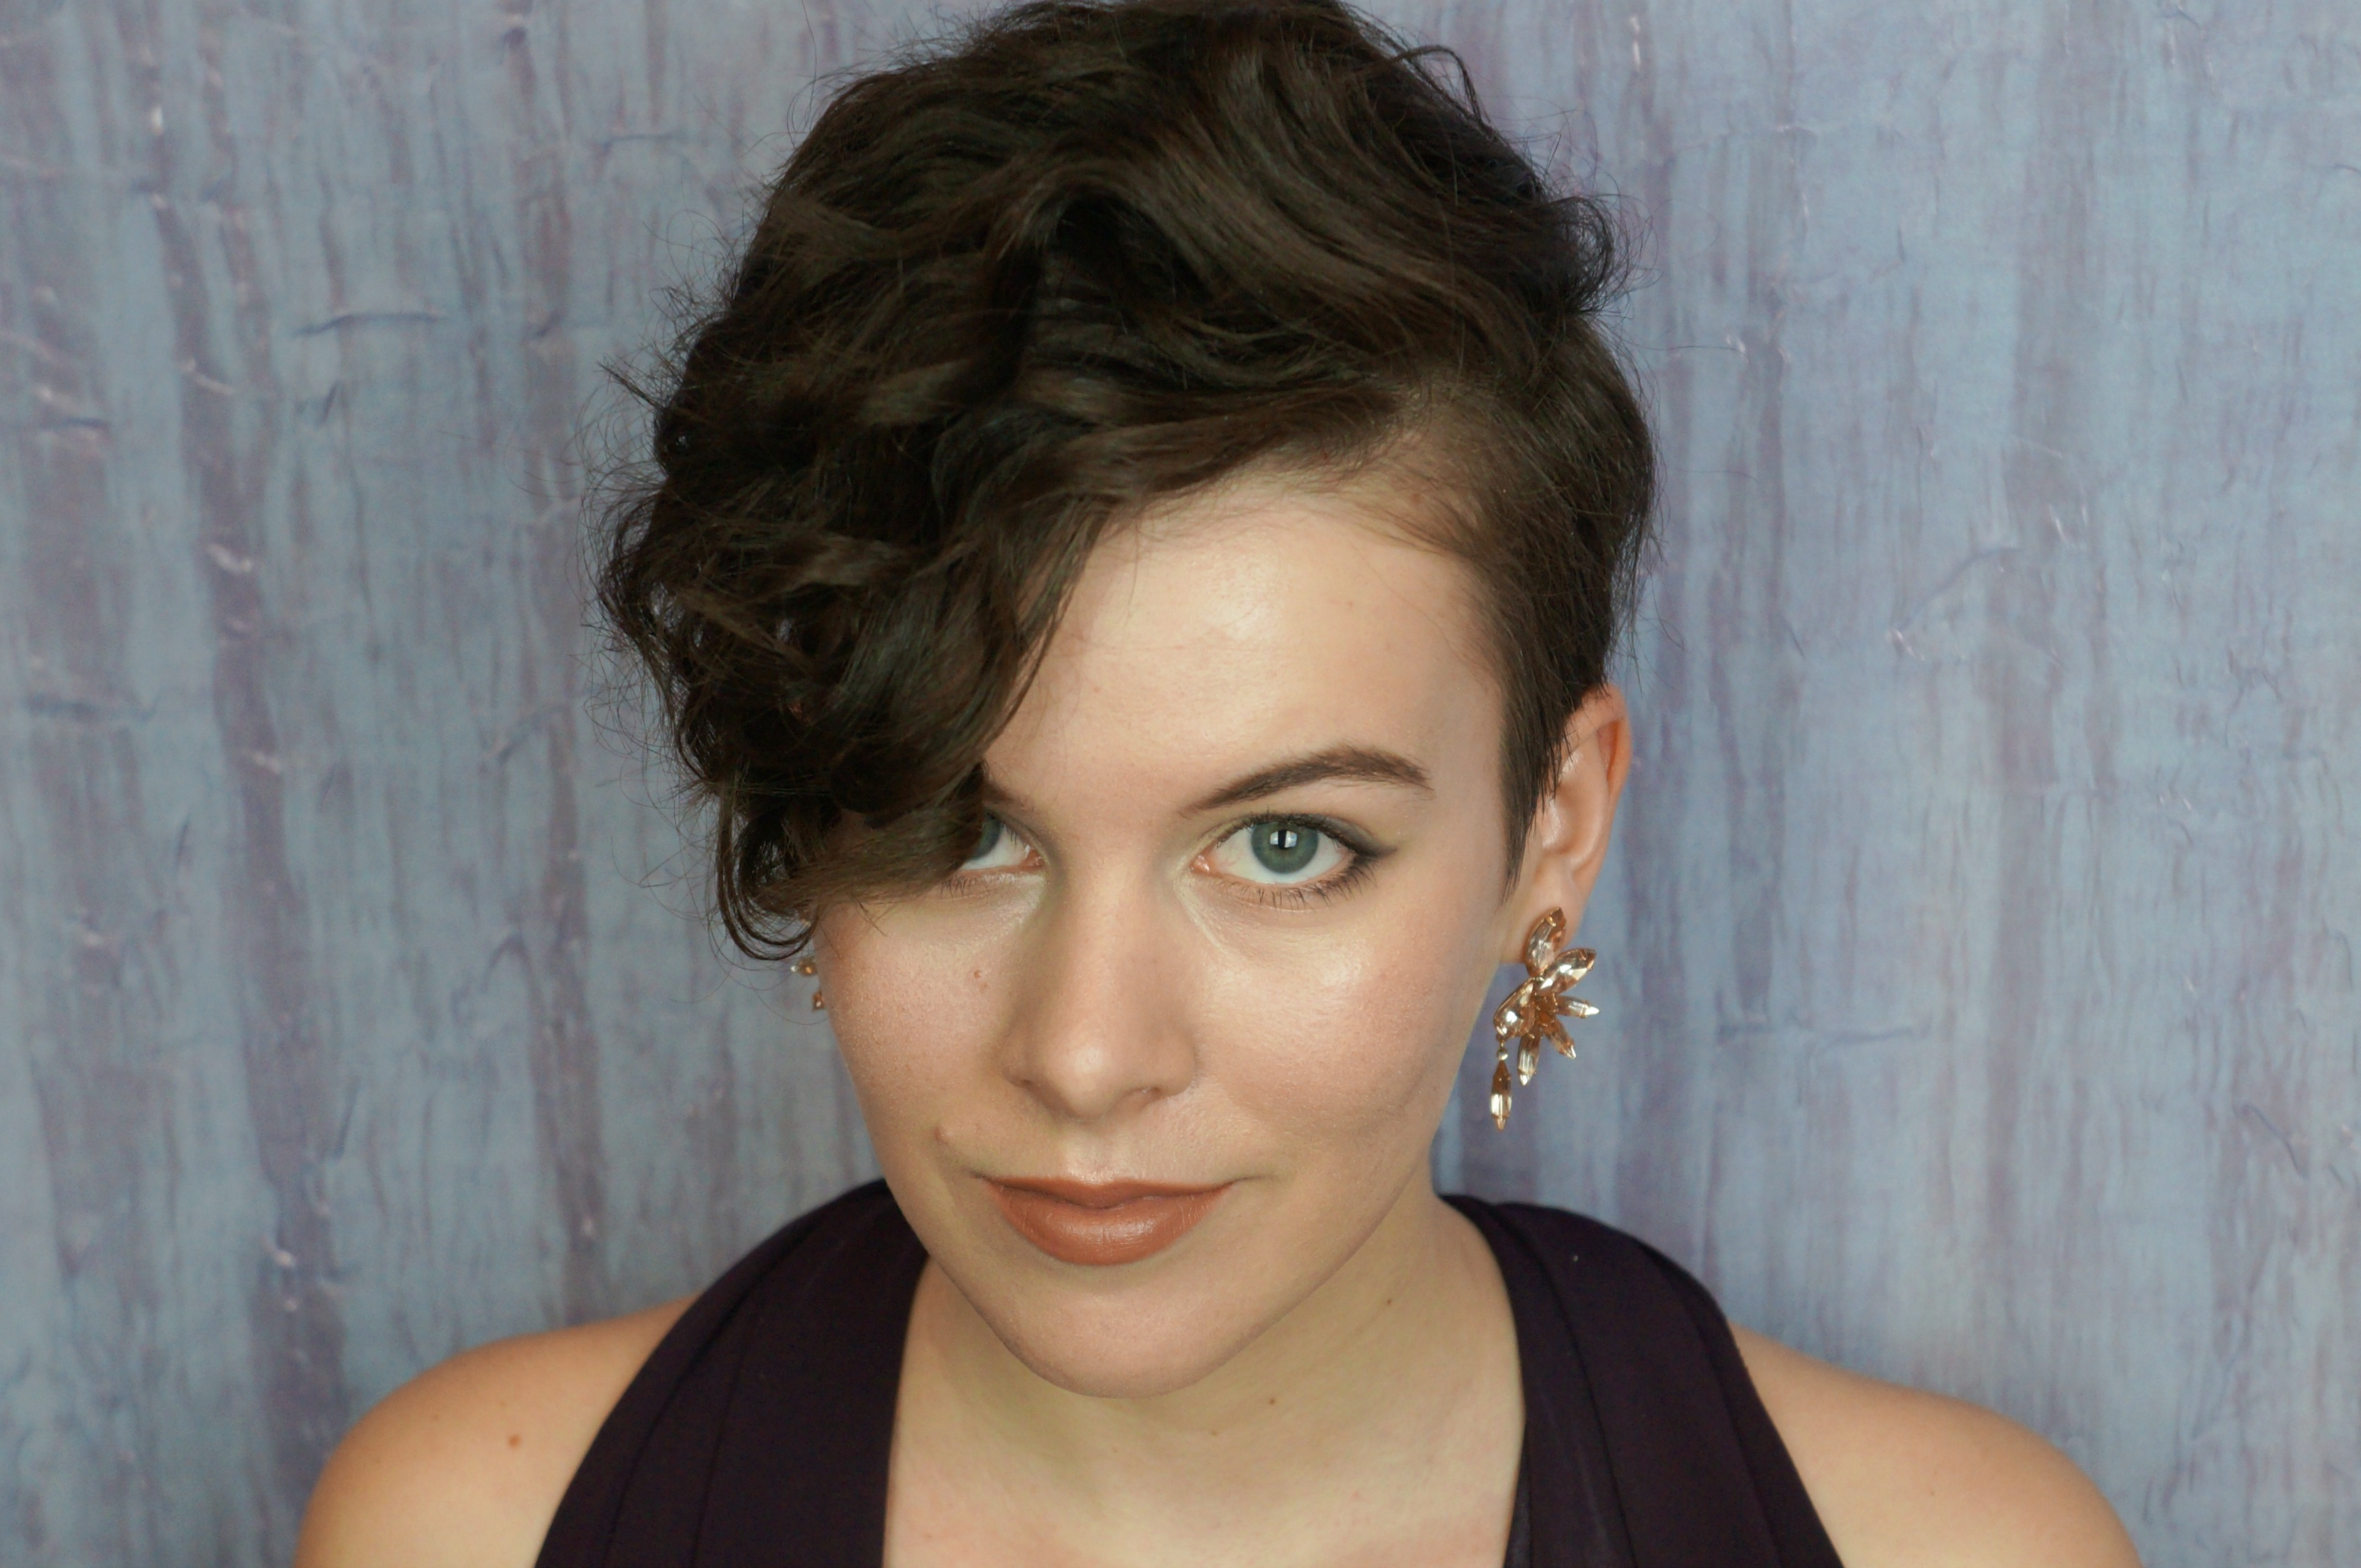 4 Short Hairstyles For Prom That Prove Pixie Cuts Can Be Extremely Glam Regarding Homecoming Short Hairstyles (View 17 of 25)